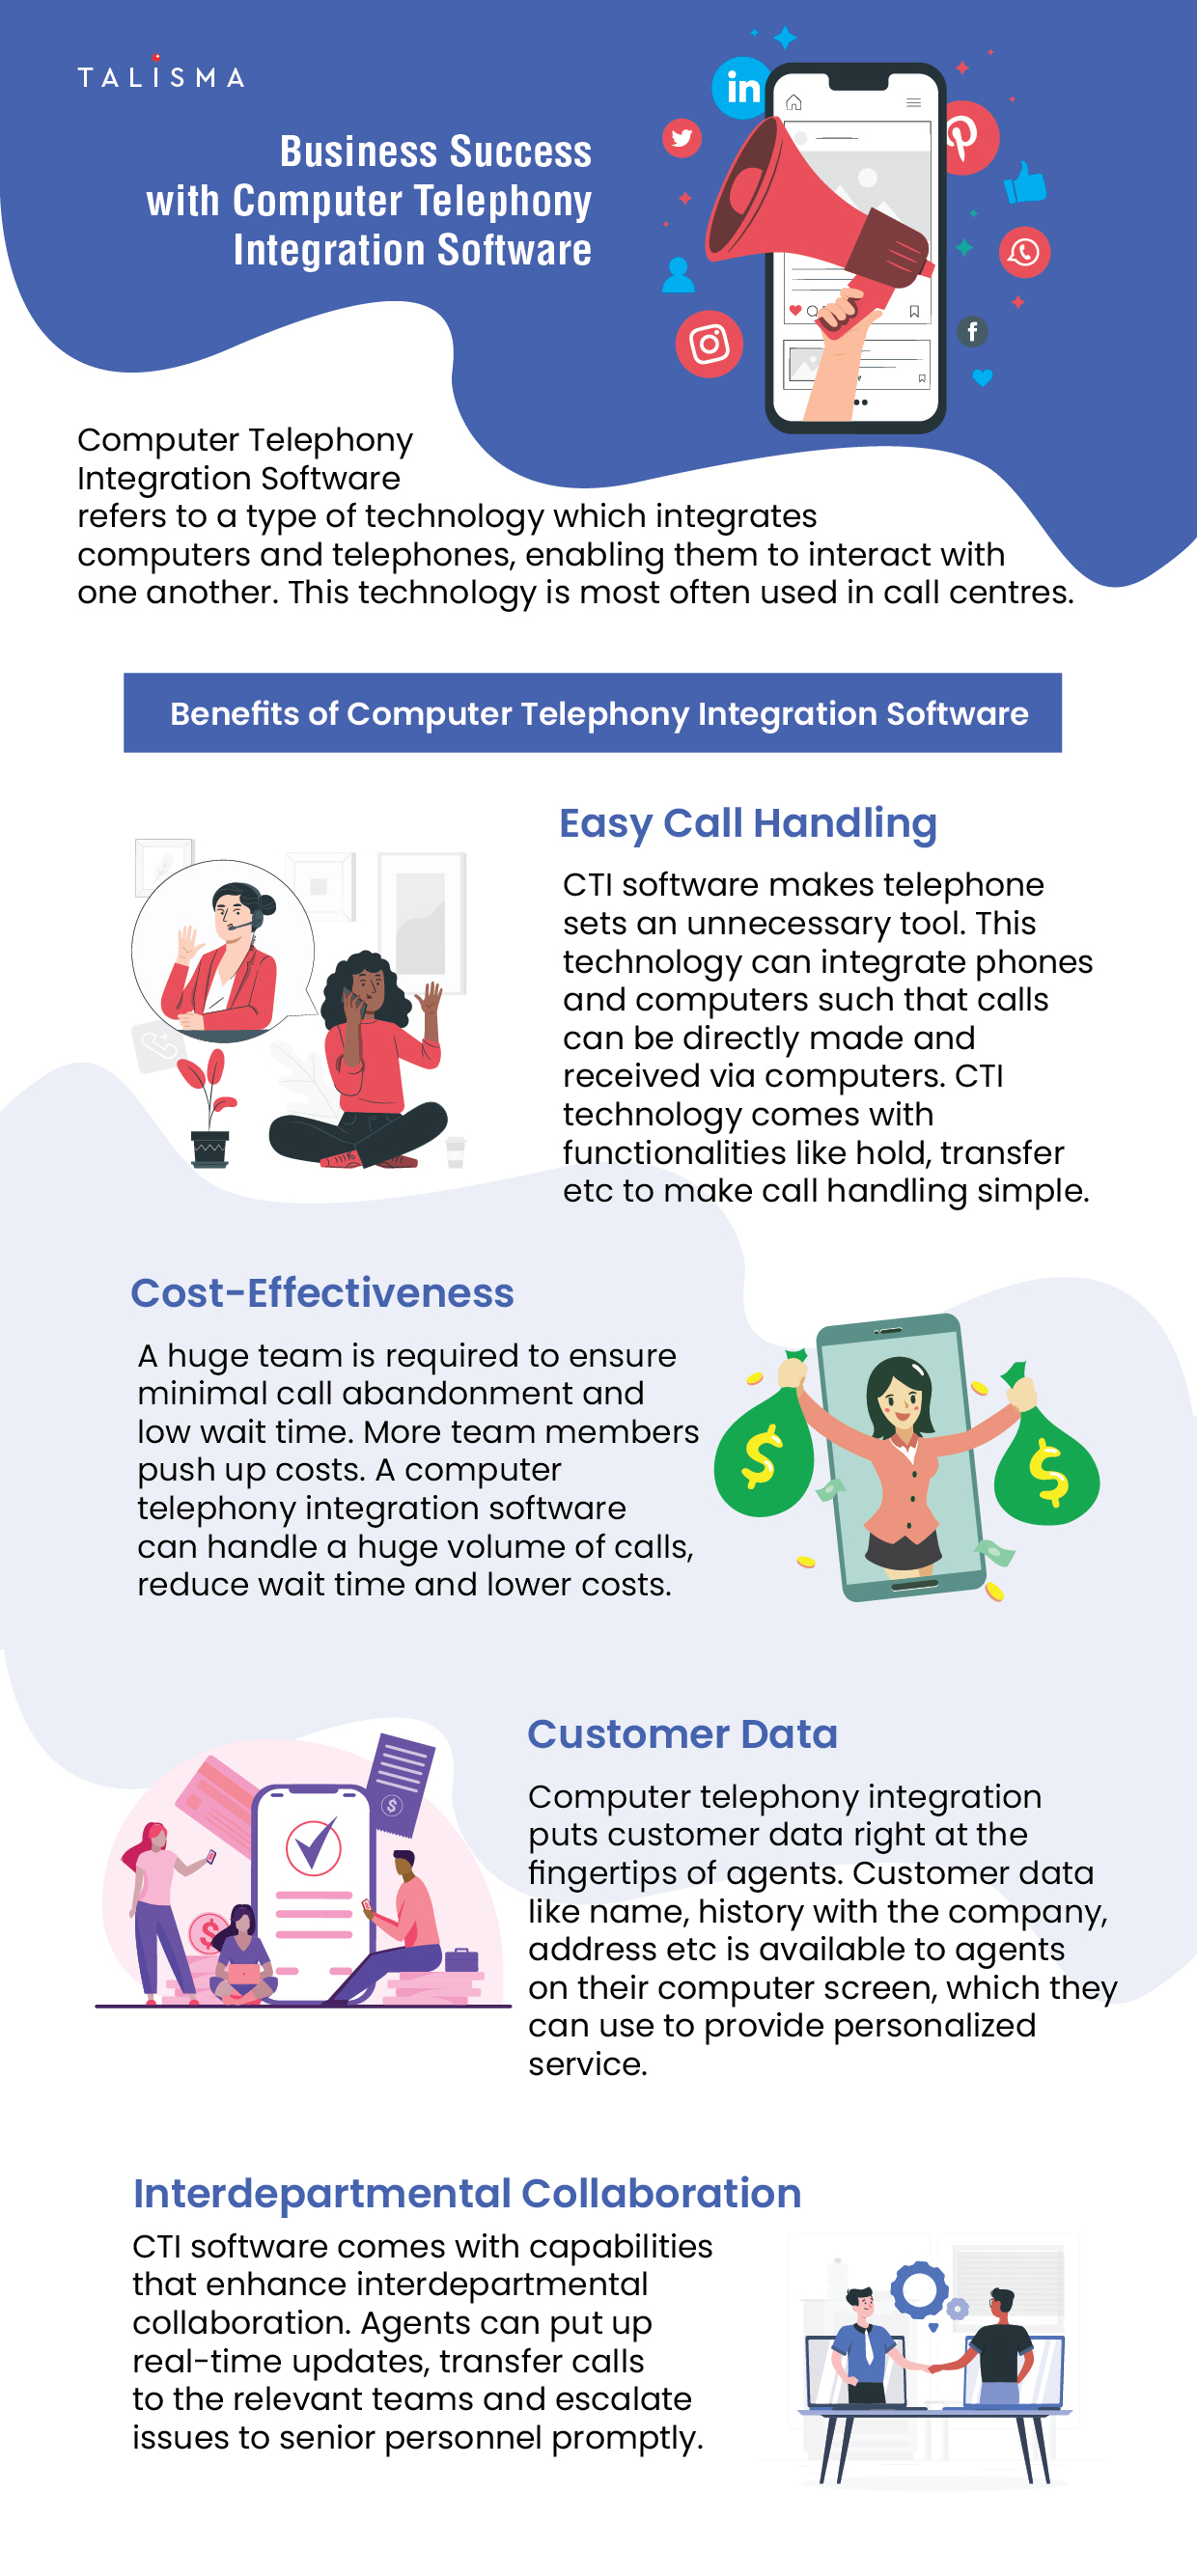 Business Success with Computer Telephony Integration Software